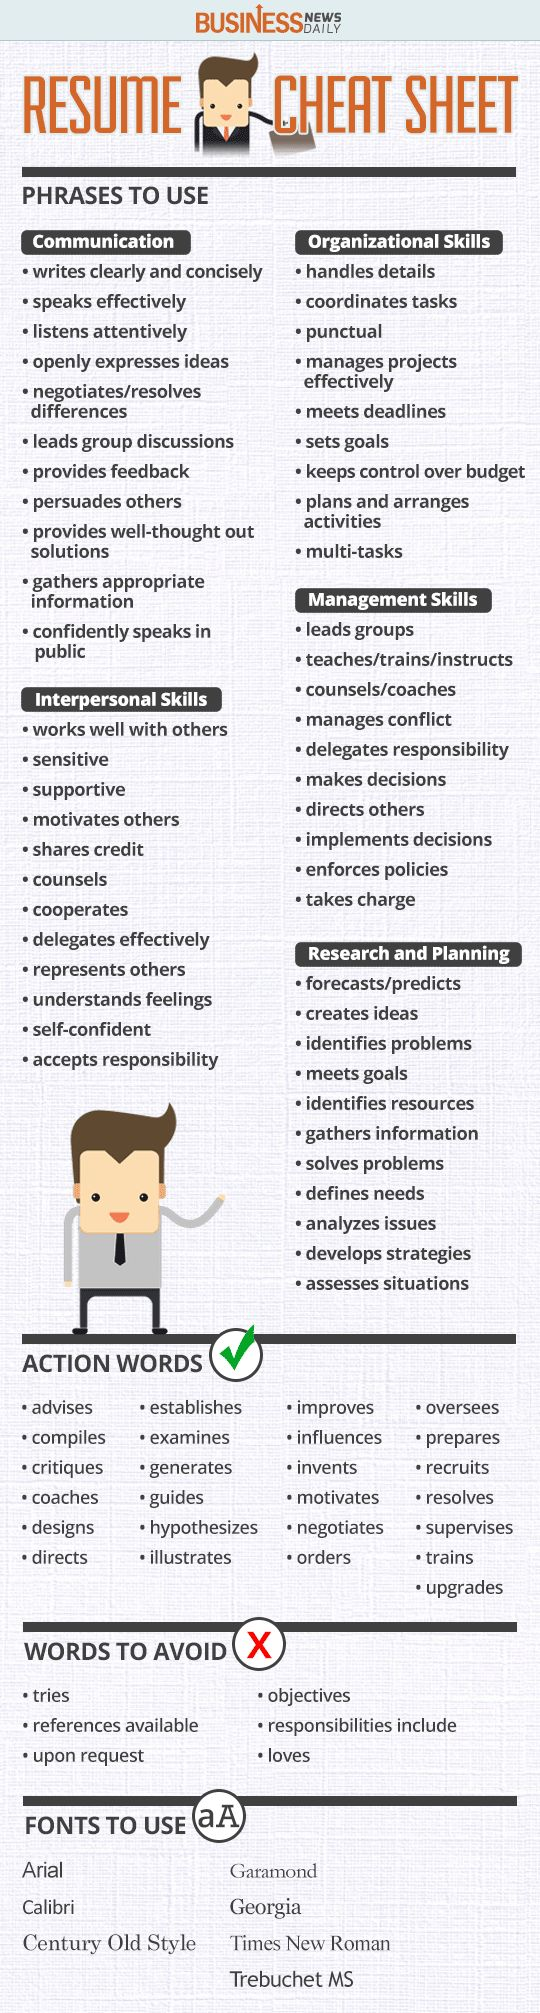 Opposenewapstandardsus  Gorgeous  Ideas About Resume On Pinterest  Cv Format Resume Cv And  With Heavenly Resume Cheat Sheet Infographic Andrews Almost Done With A Complete Unit On Employment Which With Captivating Msw Resume Also Web Developer Resumes In Addition Interesting Resumes And College Graduate Resume Samples As Well As Adding References To A Resume Additionally Resume For Retail Sales Associate From Pinterestcom With Opposenewapstandardsus  Heavenly  Ideas About Resume On Pinterest  Cv Format Resume Cv And  With Captivating Resume Cheat Sheet Infographic Andrews Almost Done With A Complete Unit On Employment Which And Gorgeous Msw Resume Also Web Developer Resumes In Addition Interesting Resumes From Pinterestcom